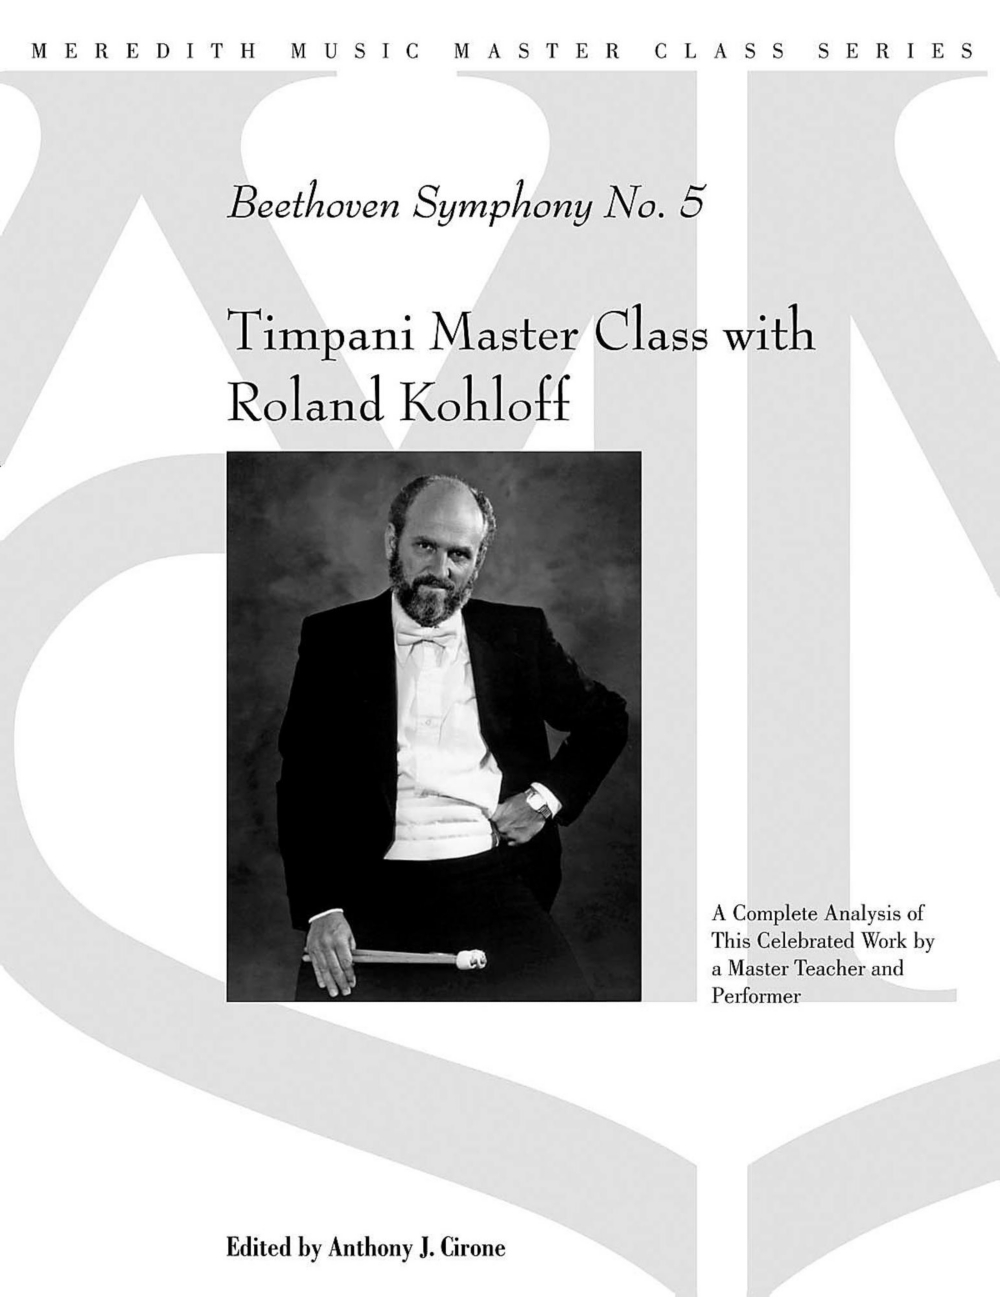 Meredith Music Timpani Master Class With Roland Kohloff Beethoven Symphony No.5 by